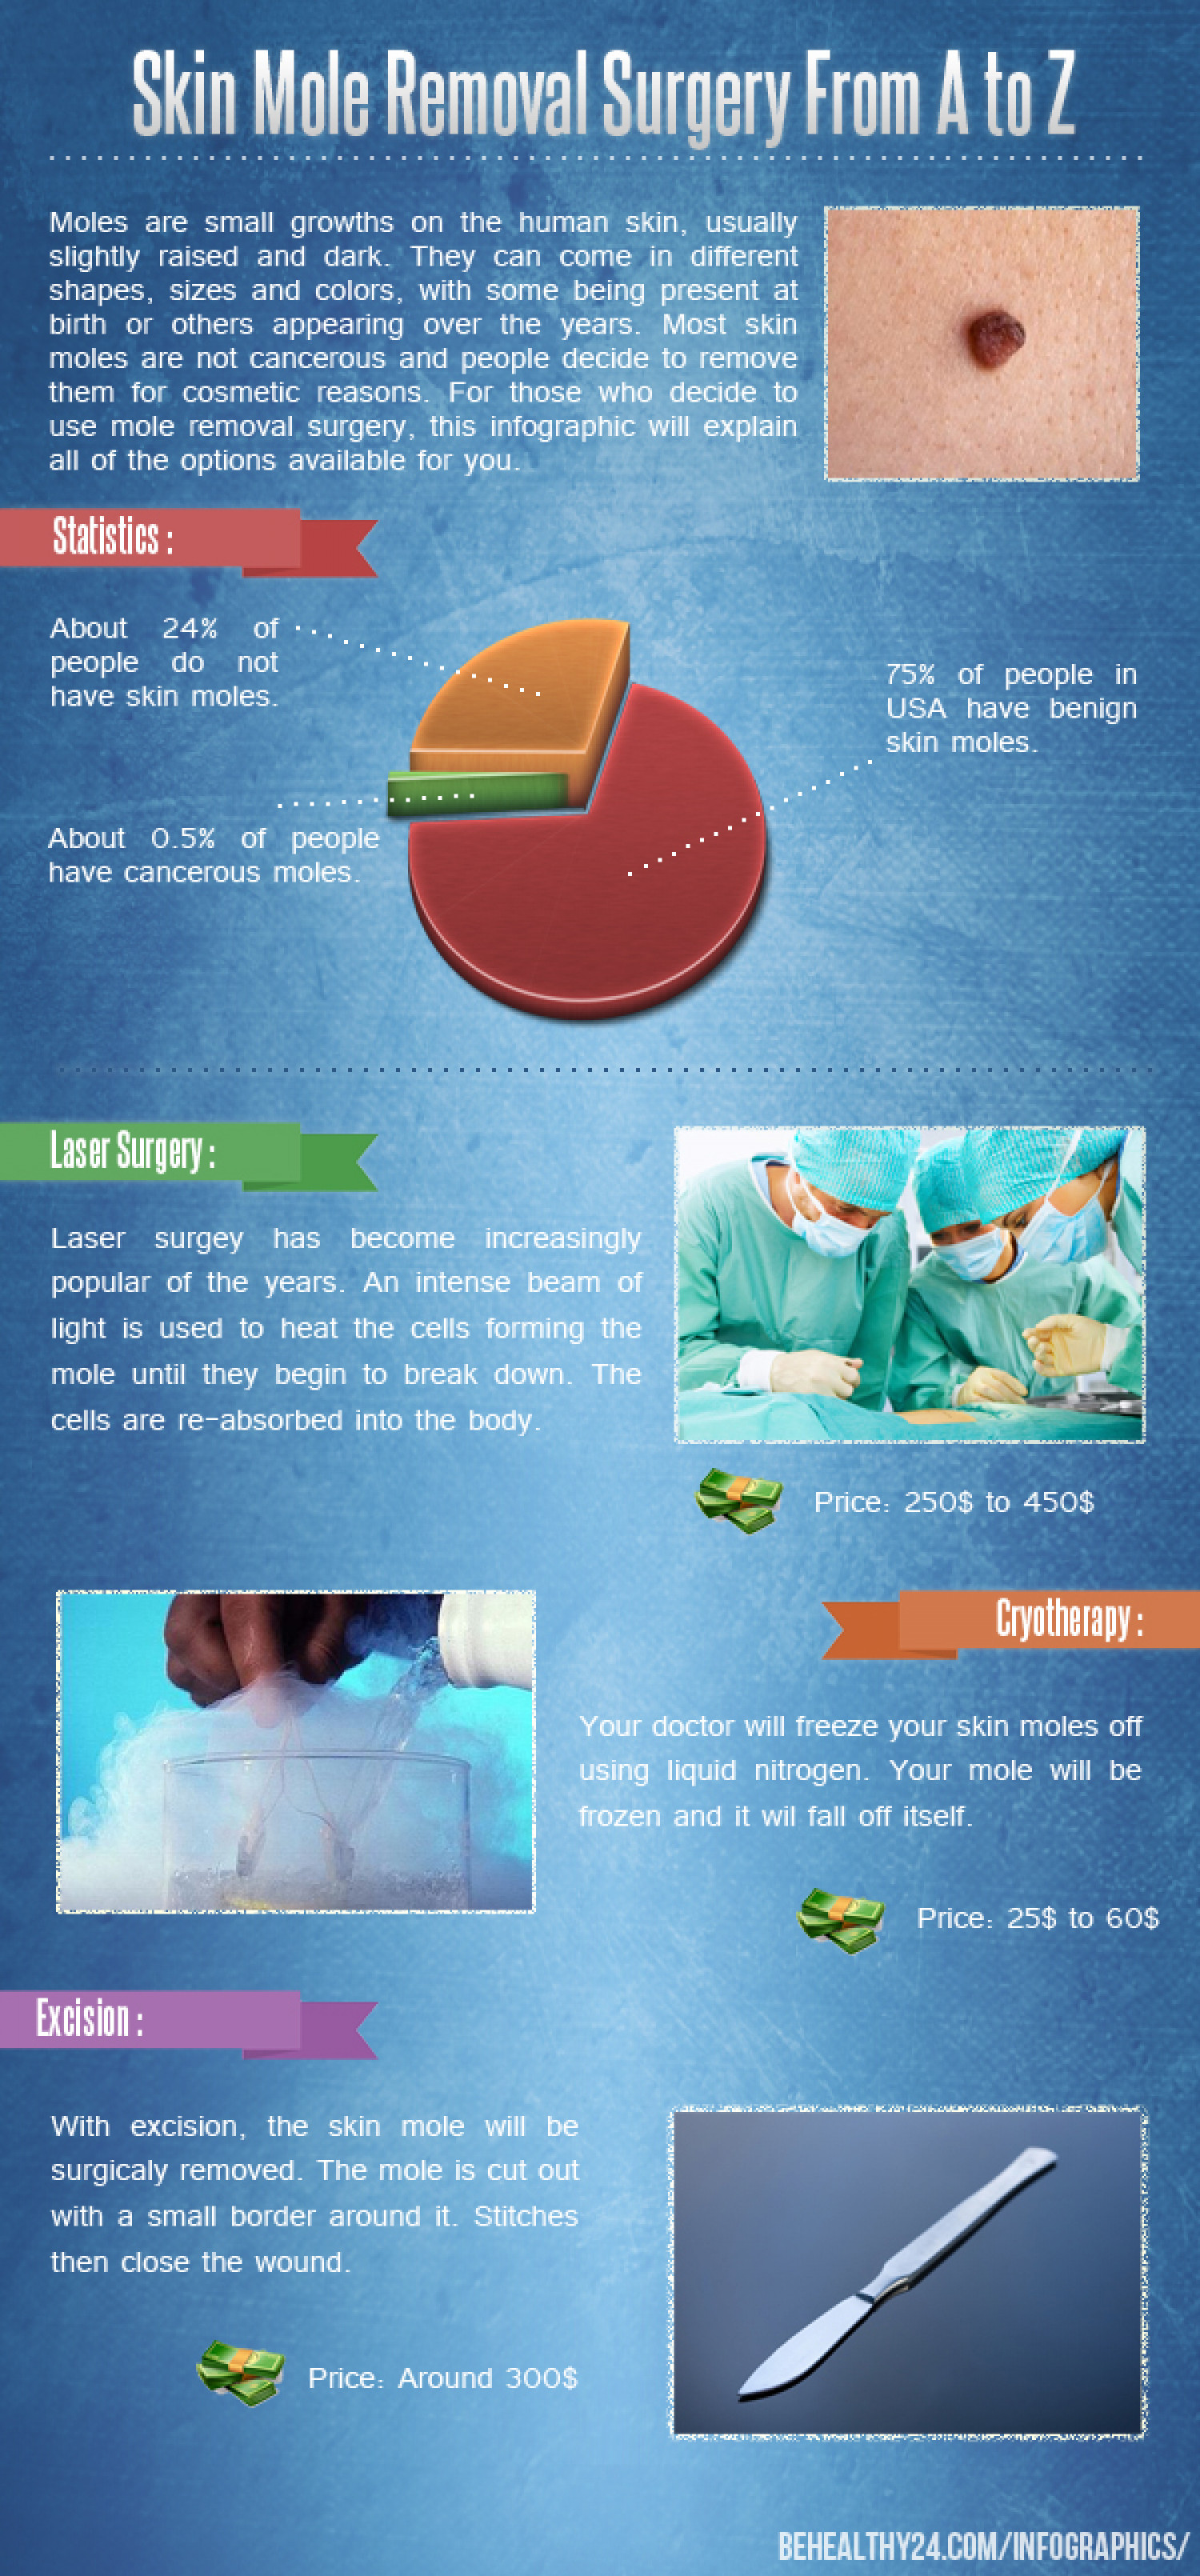 Skin Mole Removal Surgery From A to Z Infographic